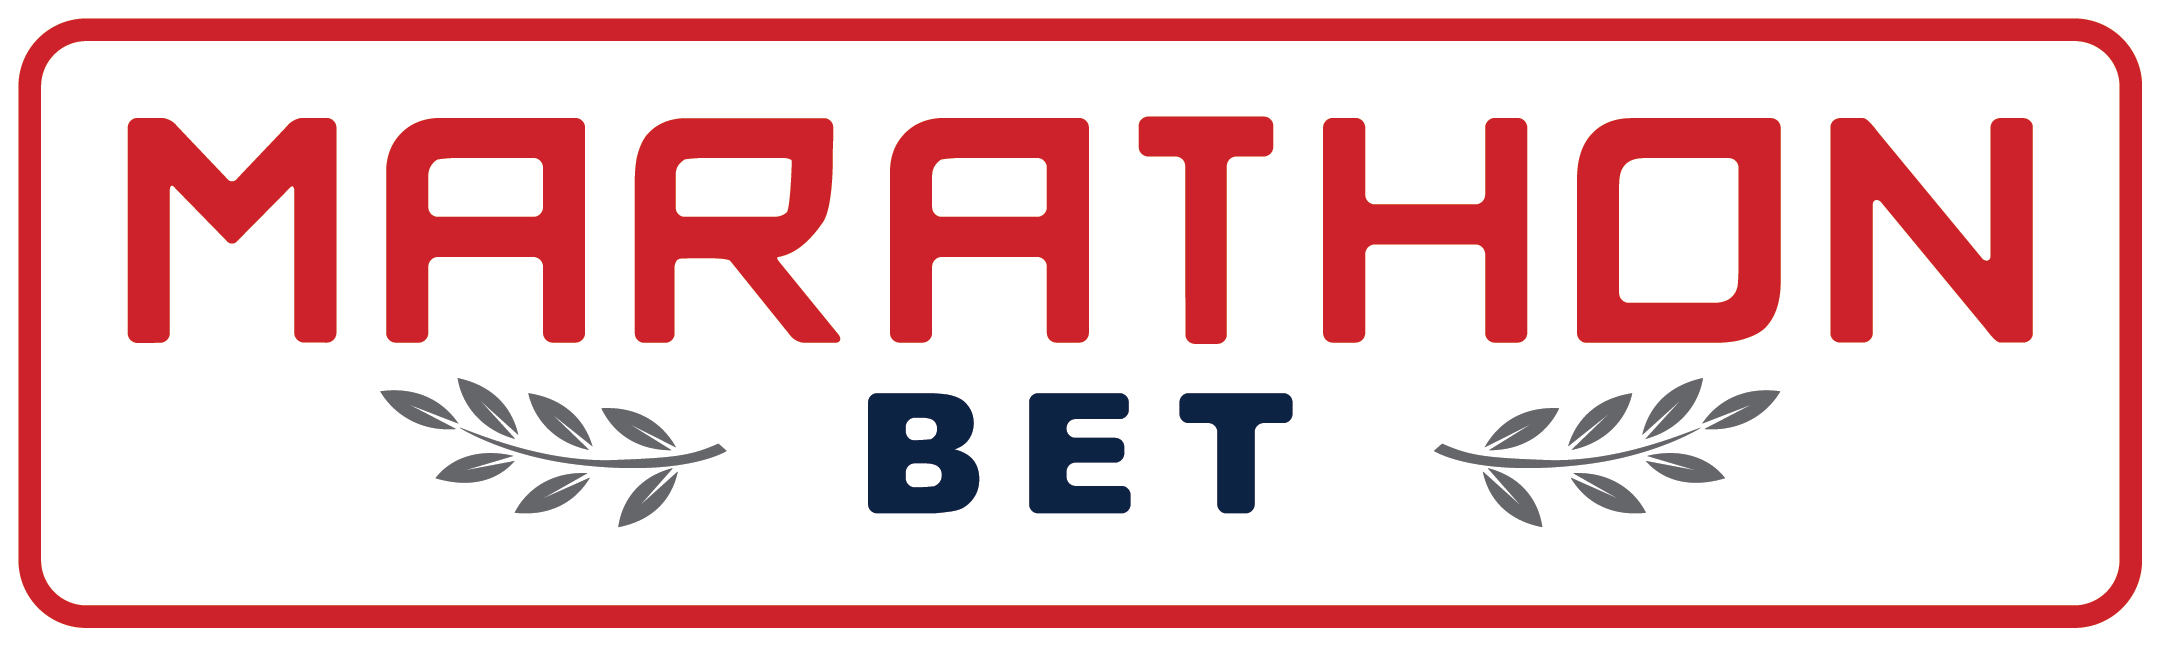 Get all the latest odds at Marathon Bet